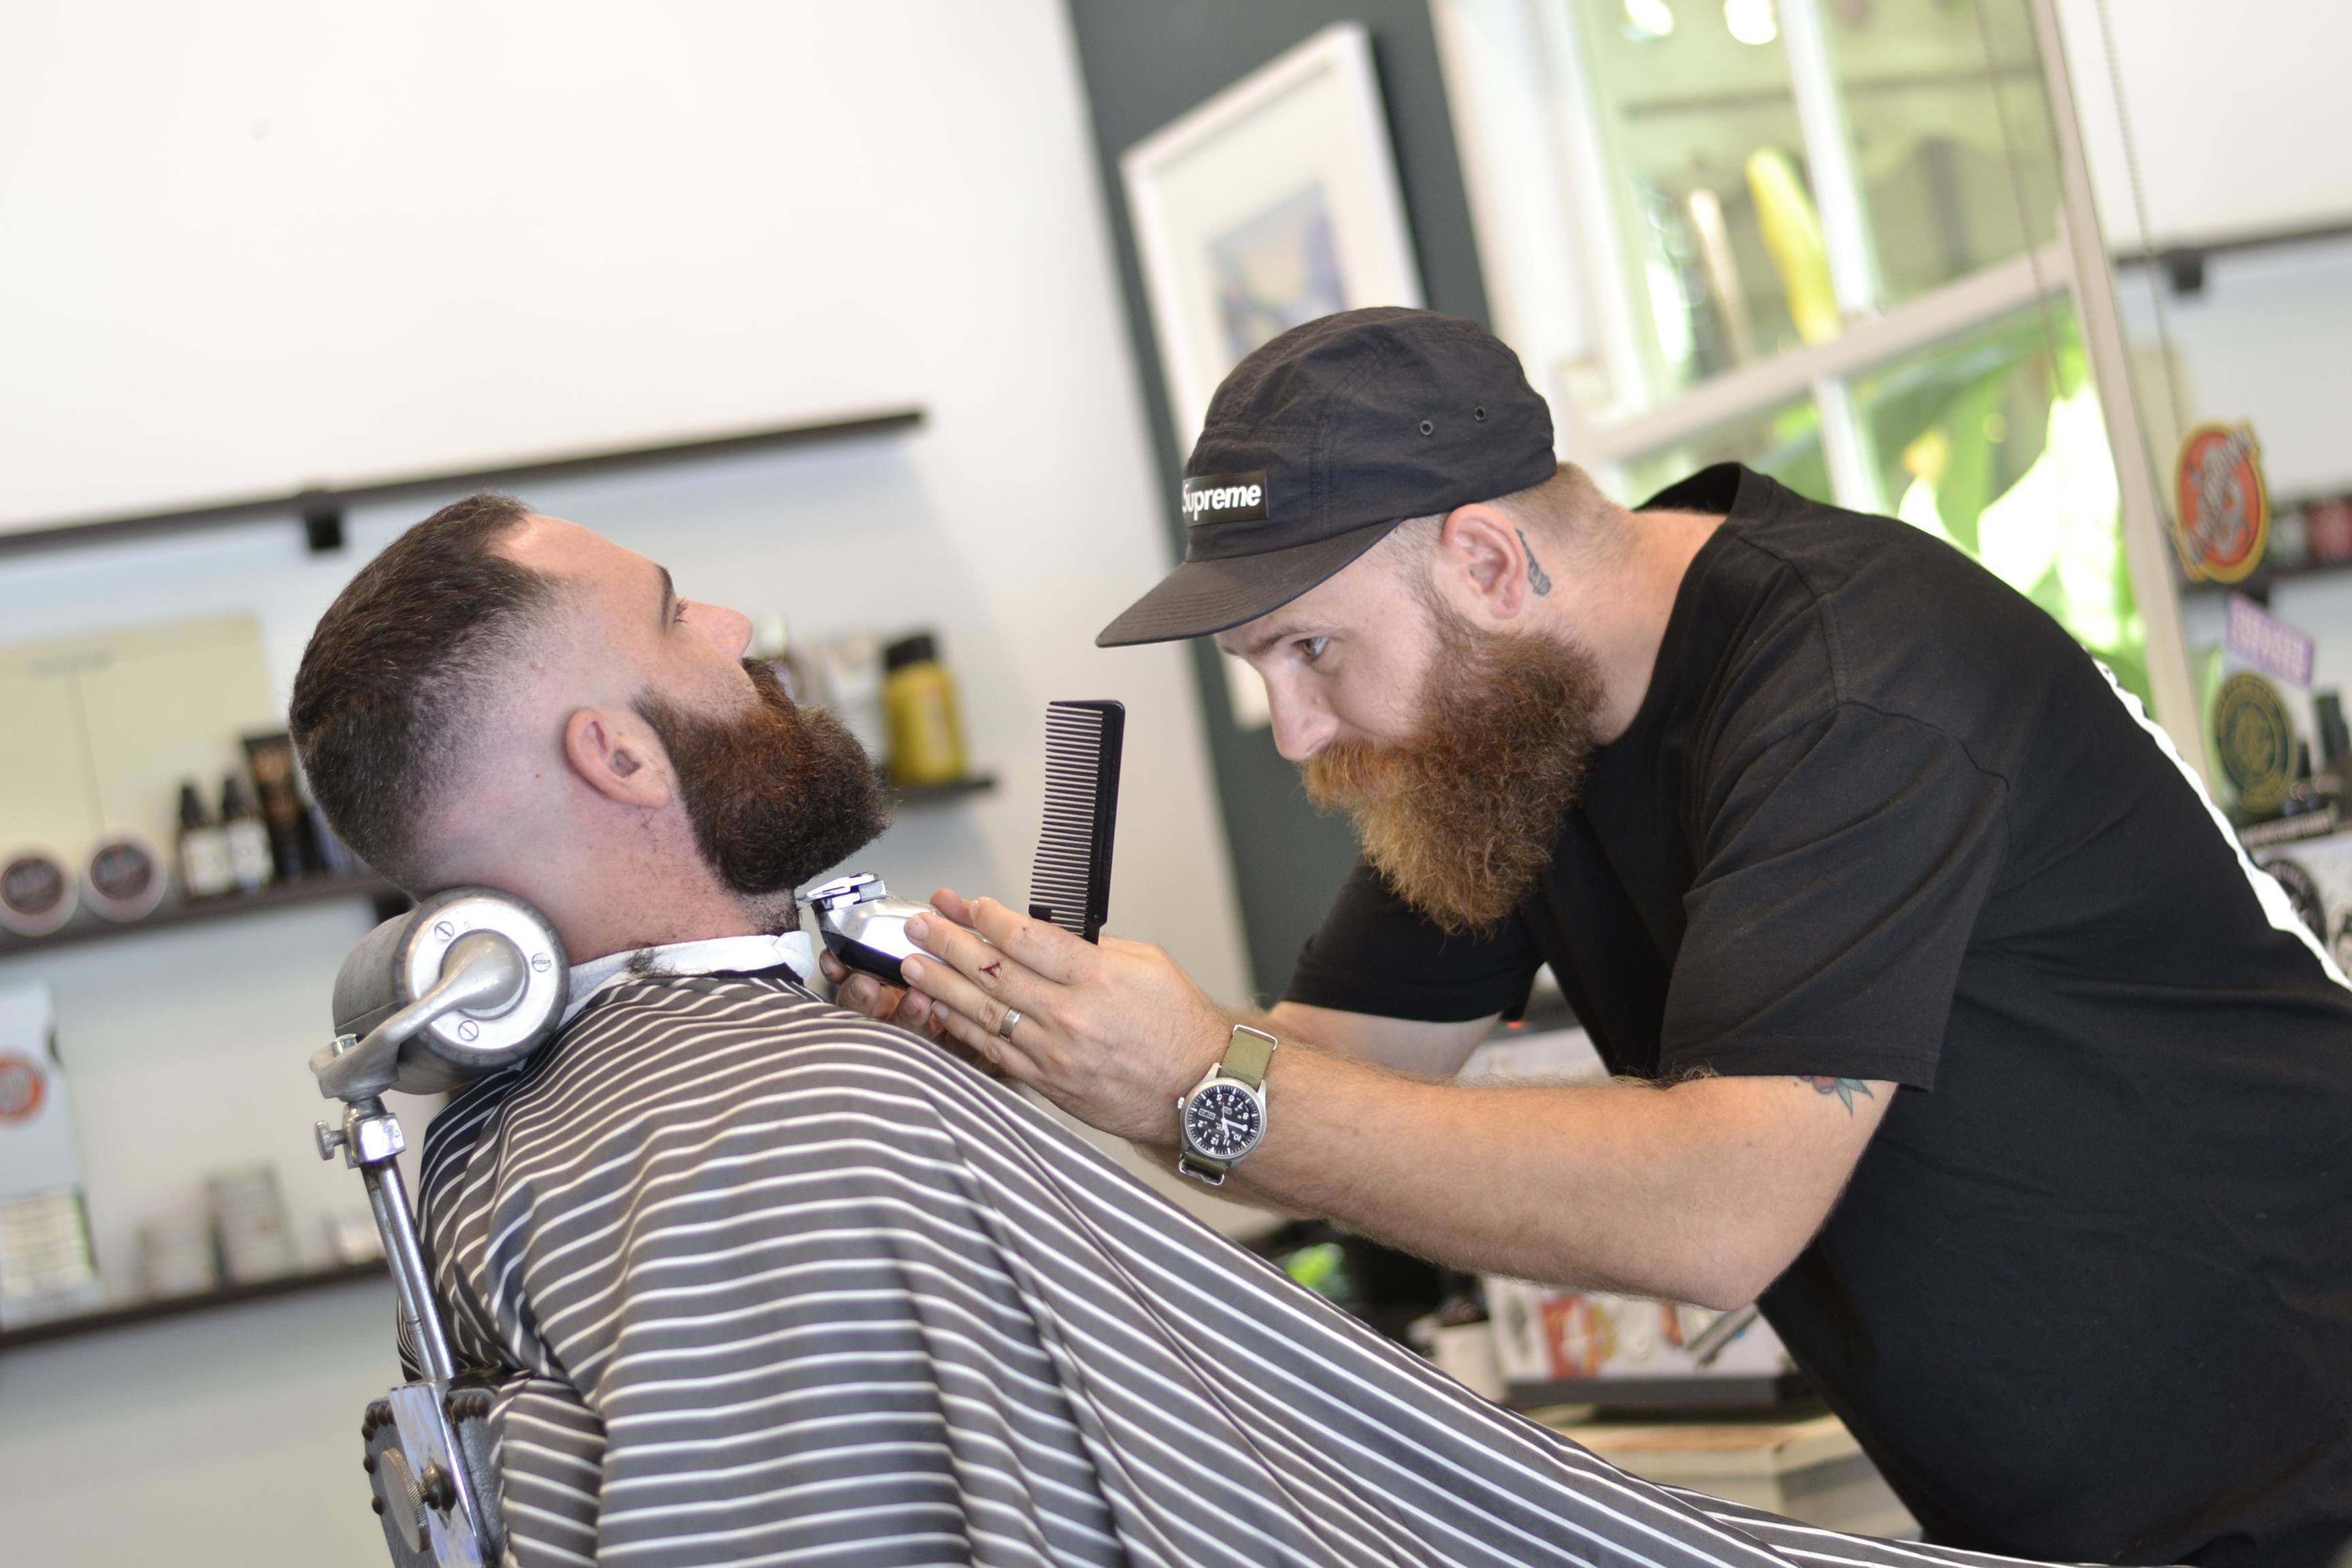 Tommy Two Blades Barbershop